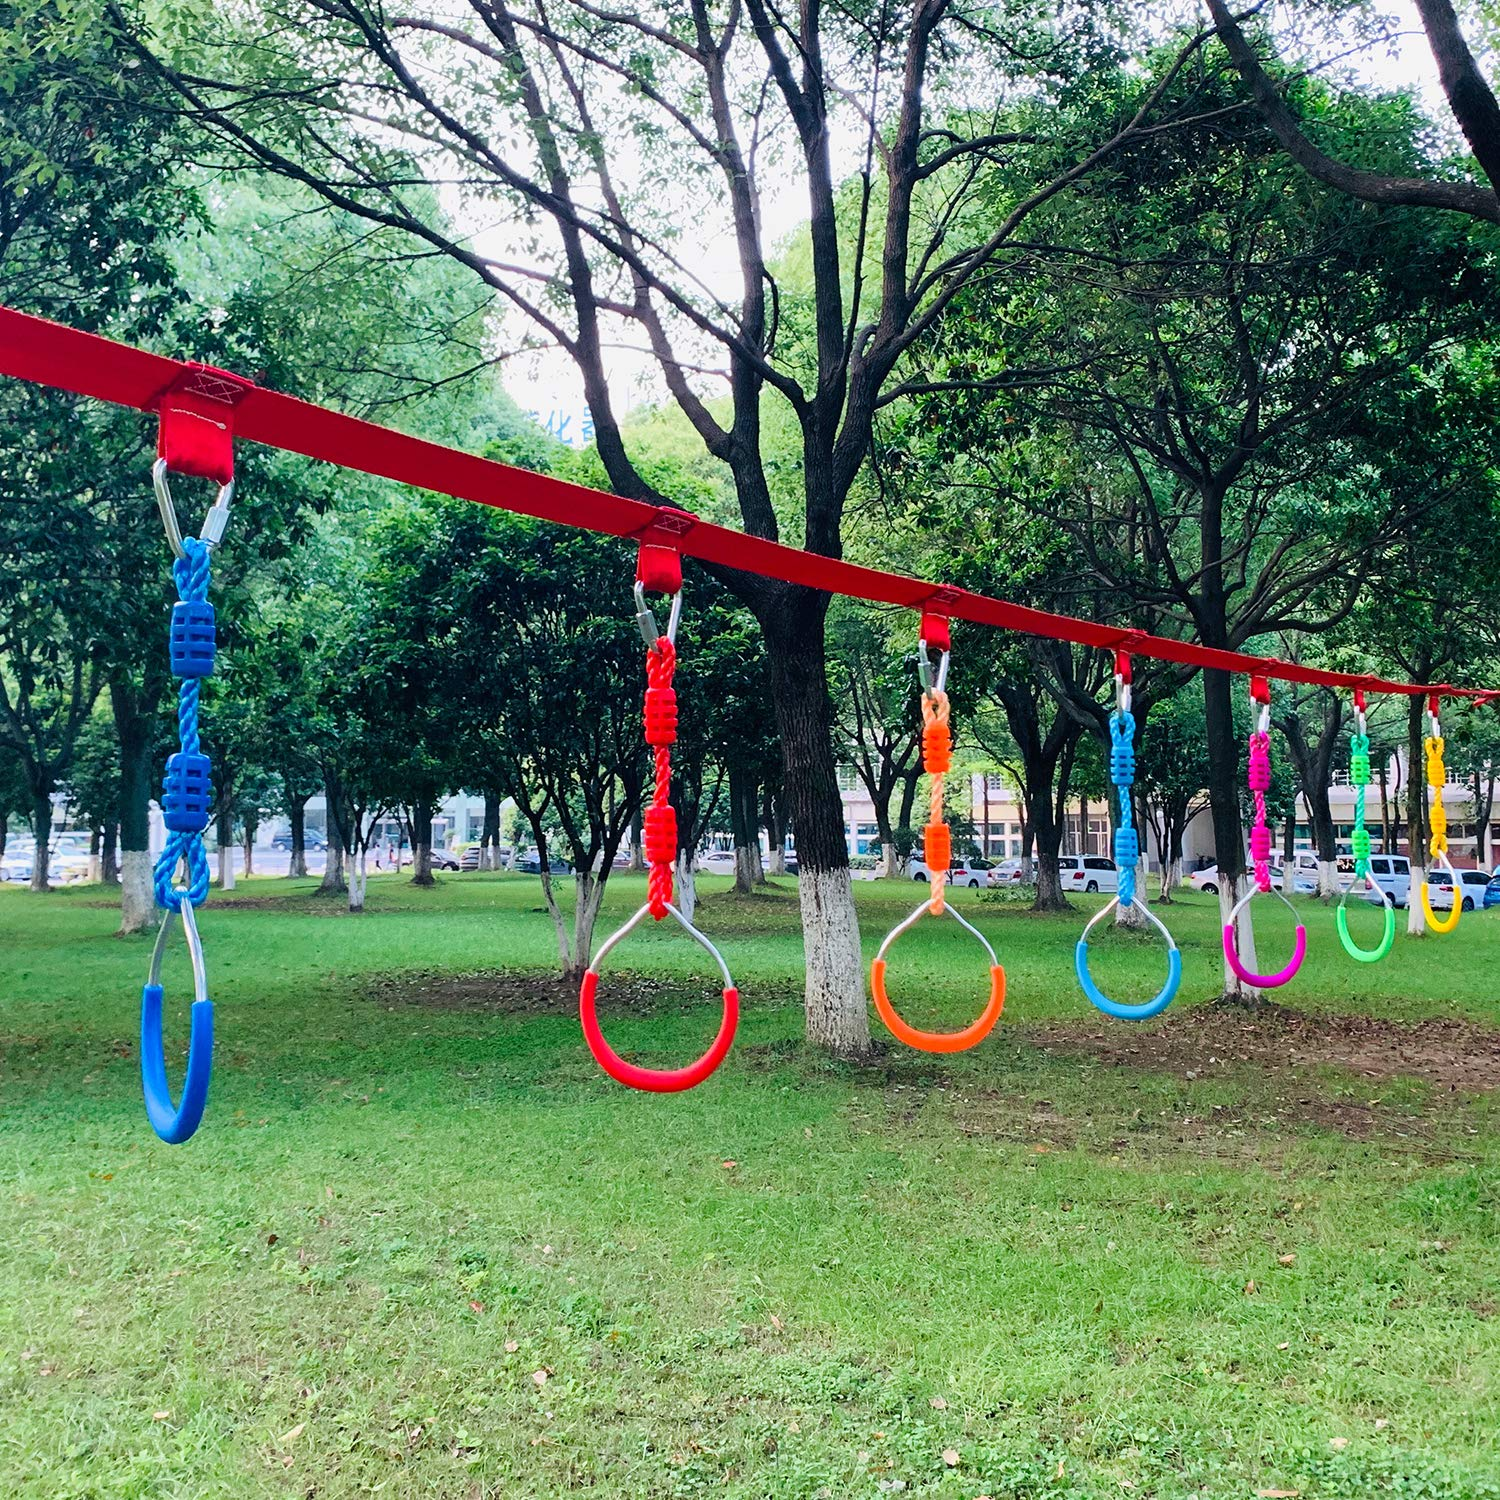 Rainbow Craft Swing Bar Rings - Colorful Backyard Outdoor Gymnastic Ring, Ninja Ring, Monkey Ring, Climbing Ring and Obstacle Ring- 7 pcs Pack by Rainbow Craft (Image #4)